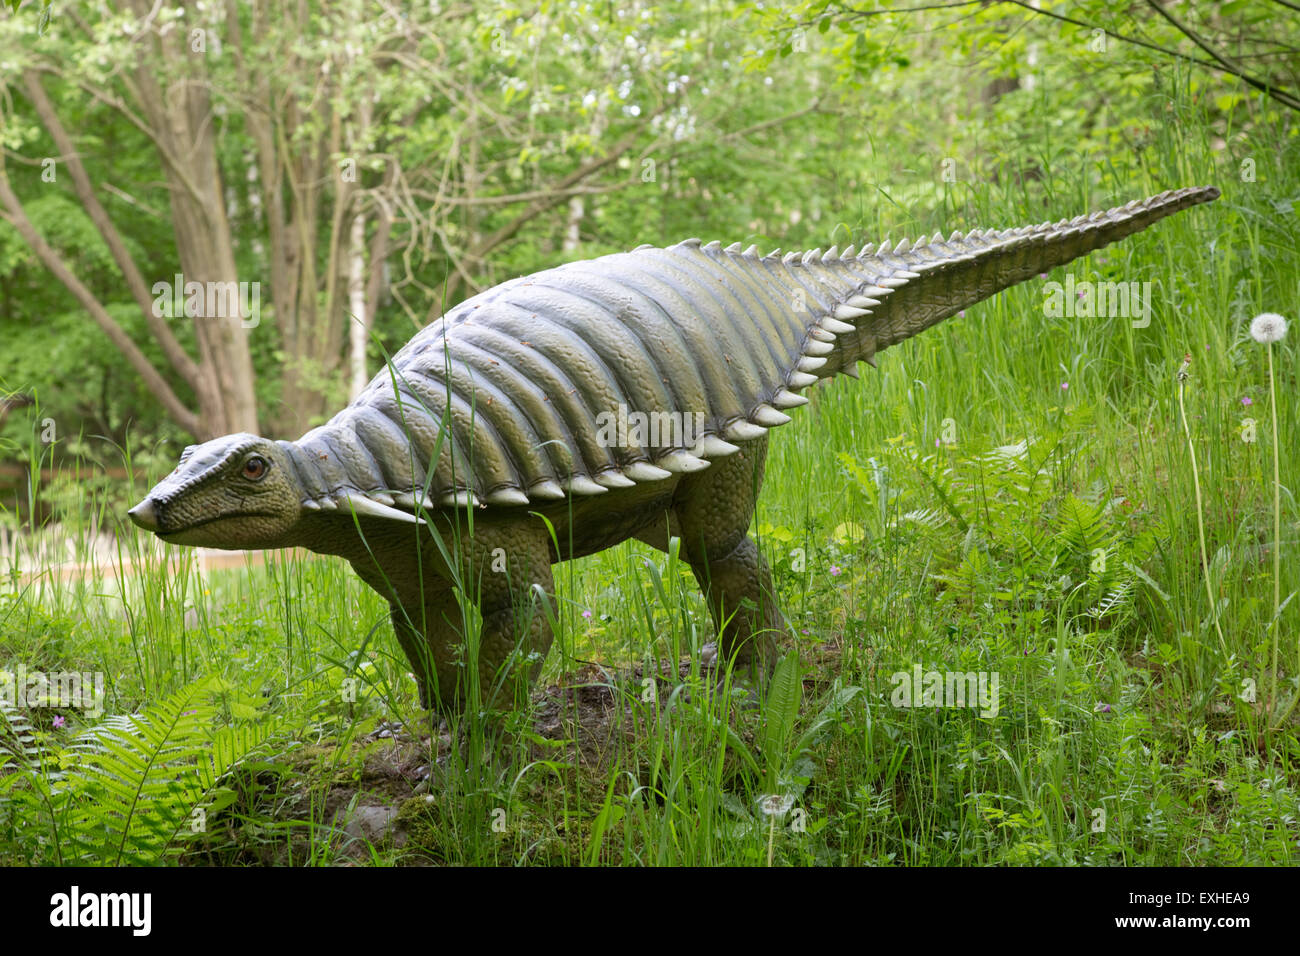 Typothorax extinct herbivorous aetosaur from late Triassic Dinosaurier Park Germany - Stock Image